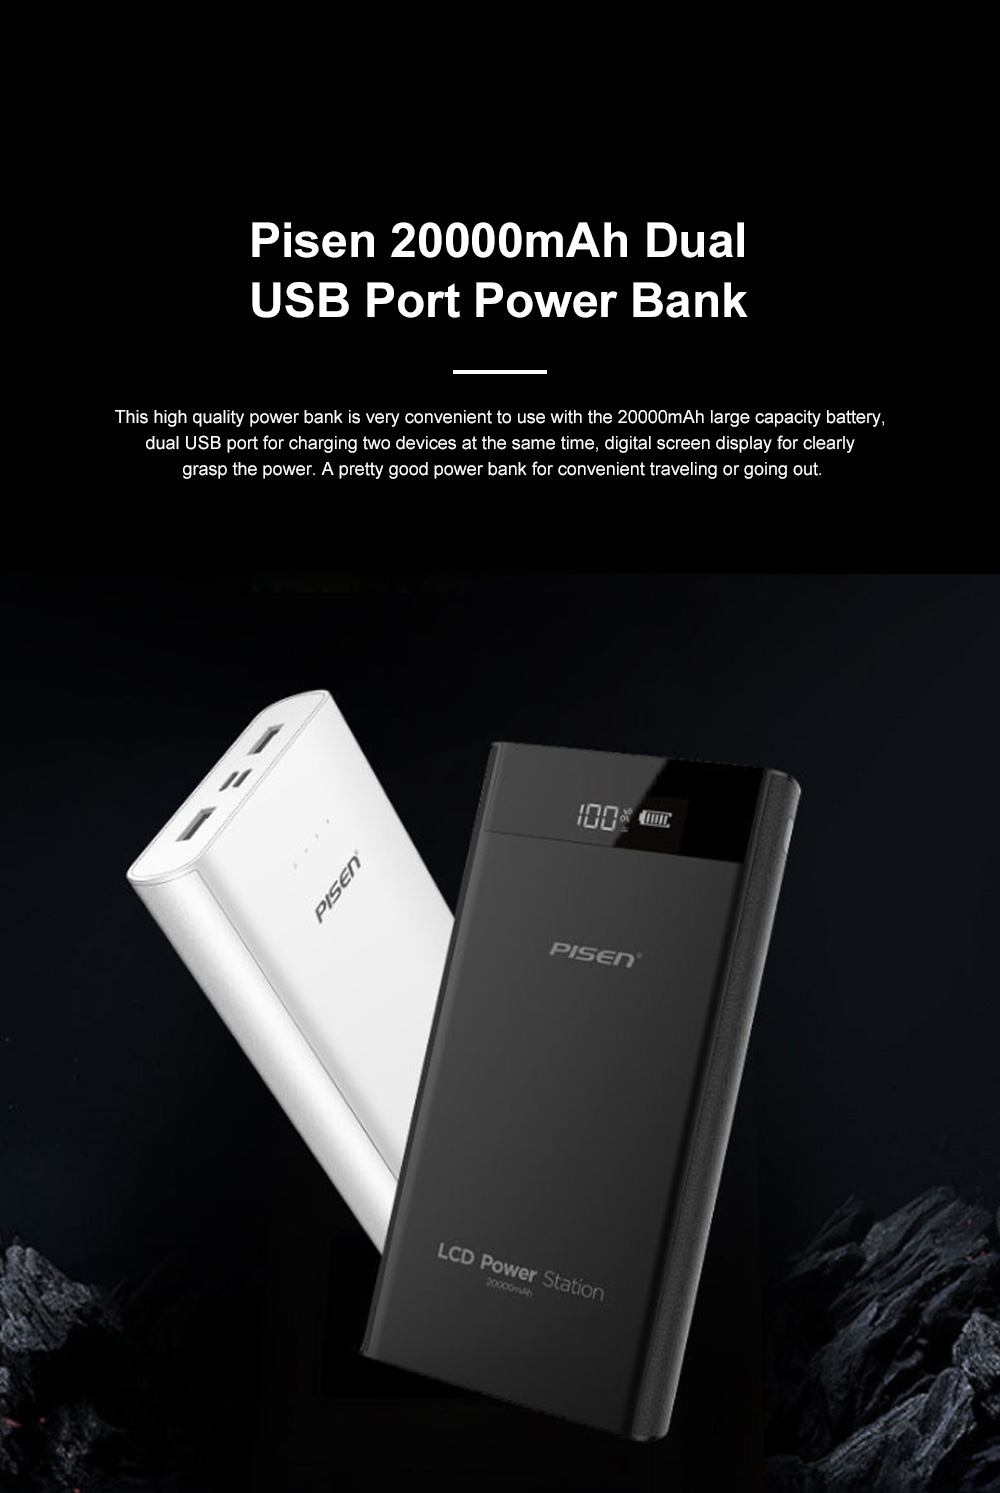 Pisen 20000mAh Large Capacity Power Bank Portable Dual USB Port Mobile Power Supply Station with Digital Screen Display 0